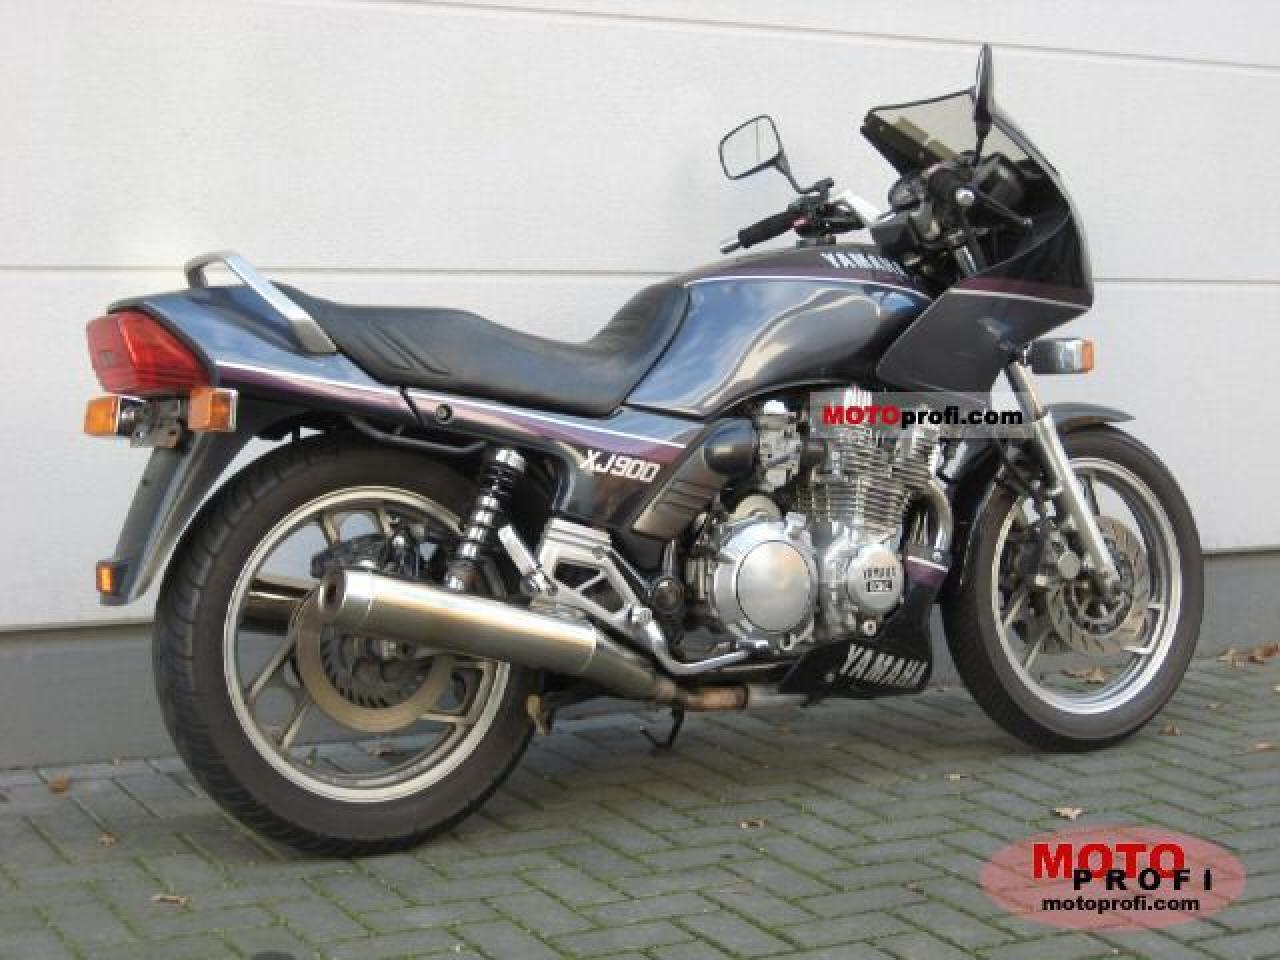 1987 Yamaha XJ 600 (reduced effect) #2